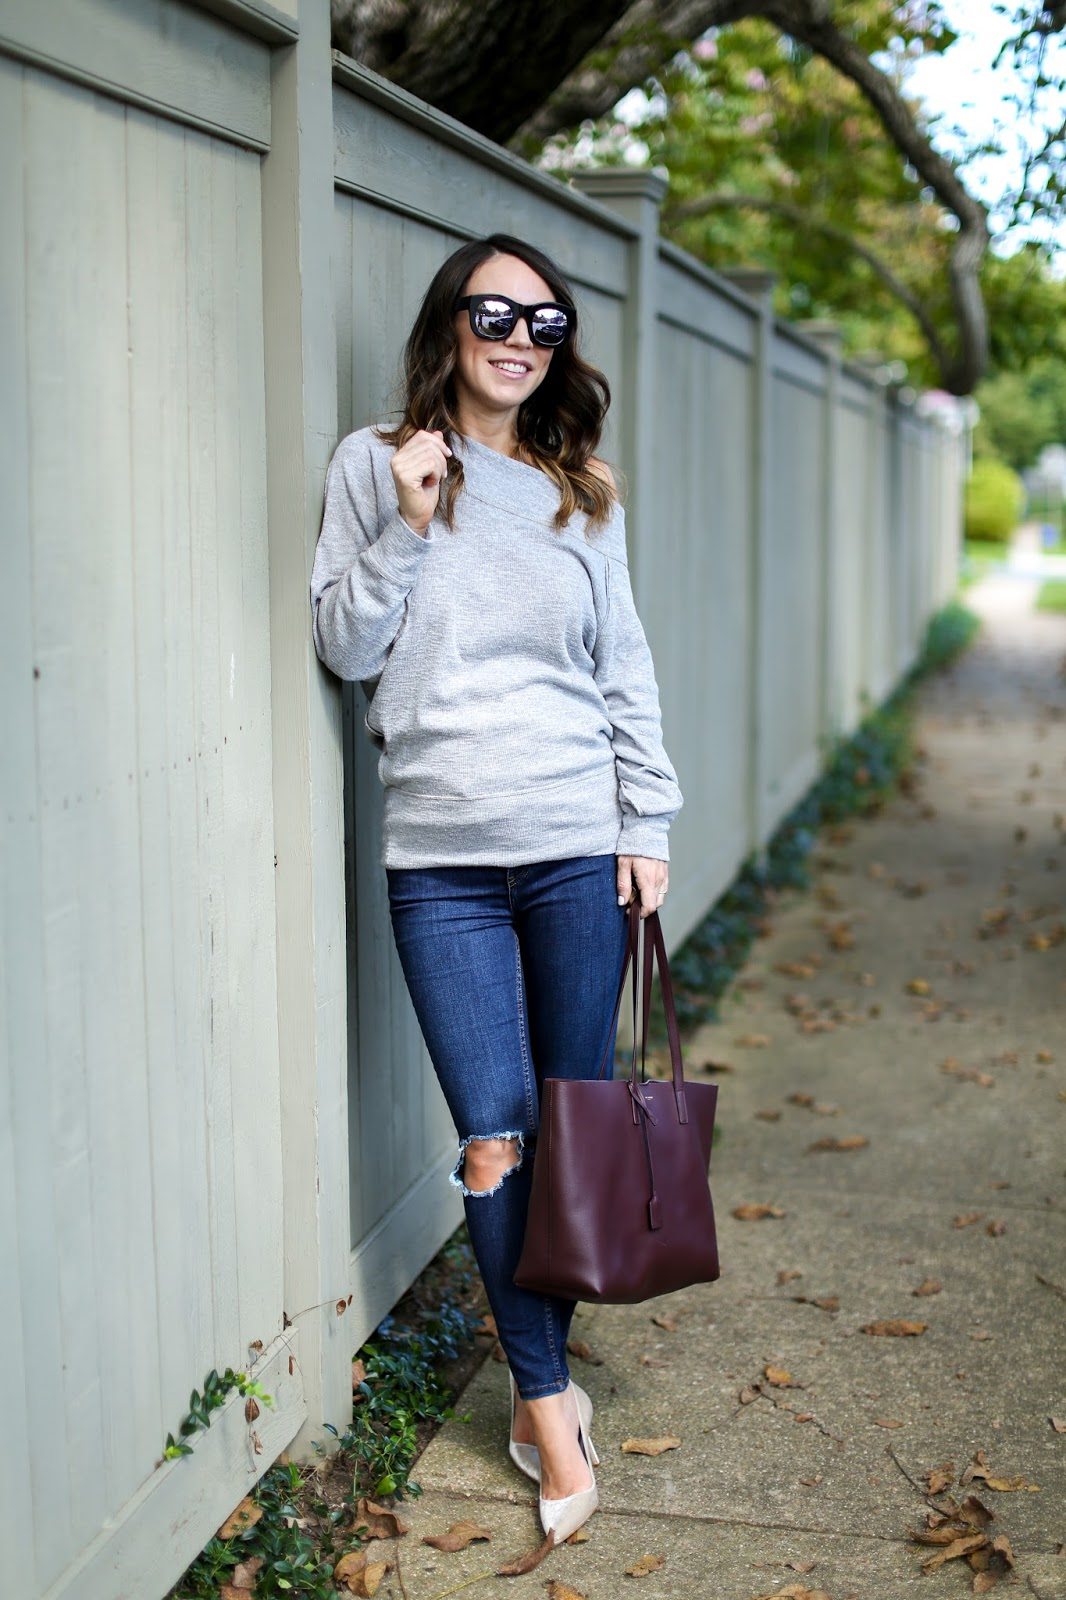 af4780dca3dc Hello October + My Most Popular Fashion and Beauty Items From September  Blog Posts